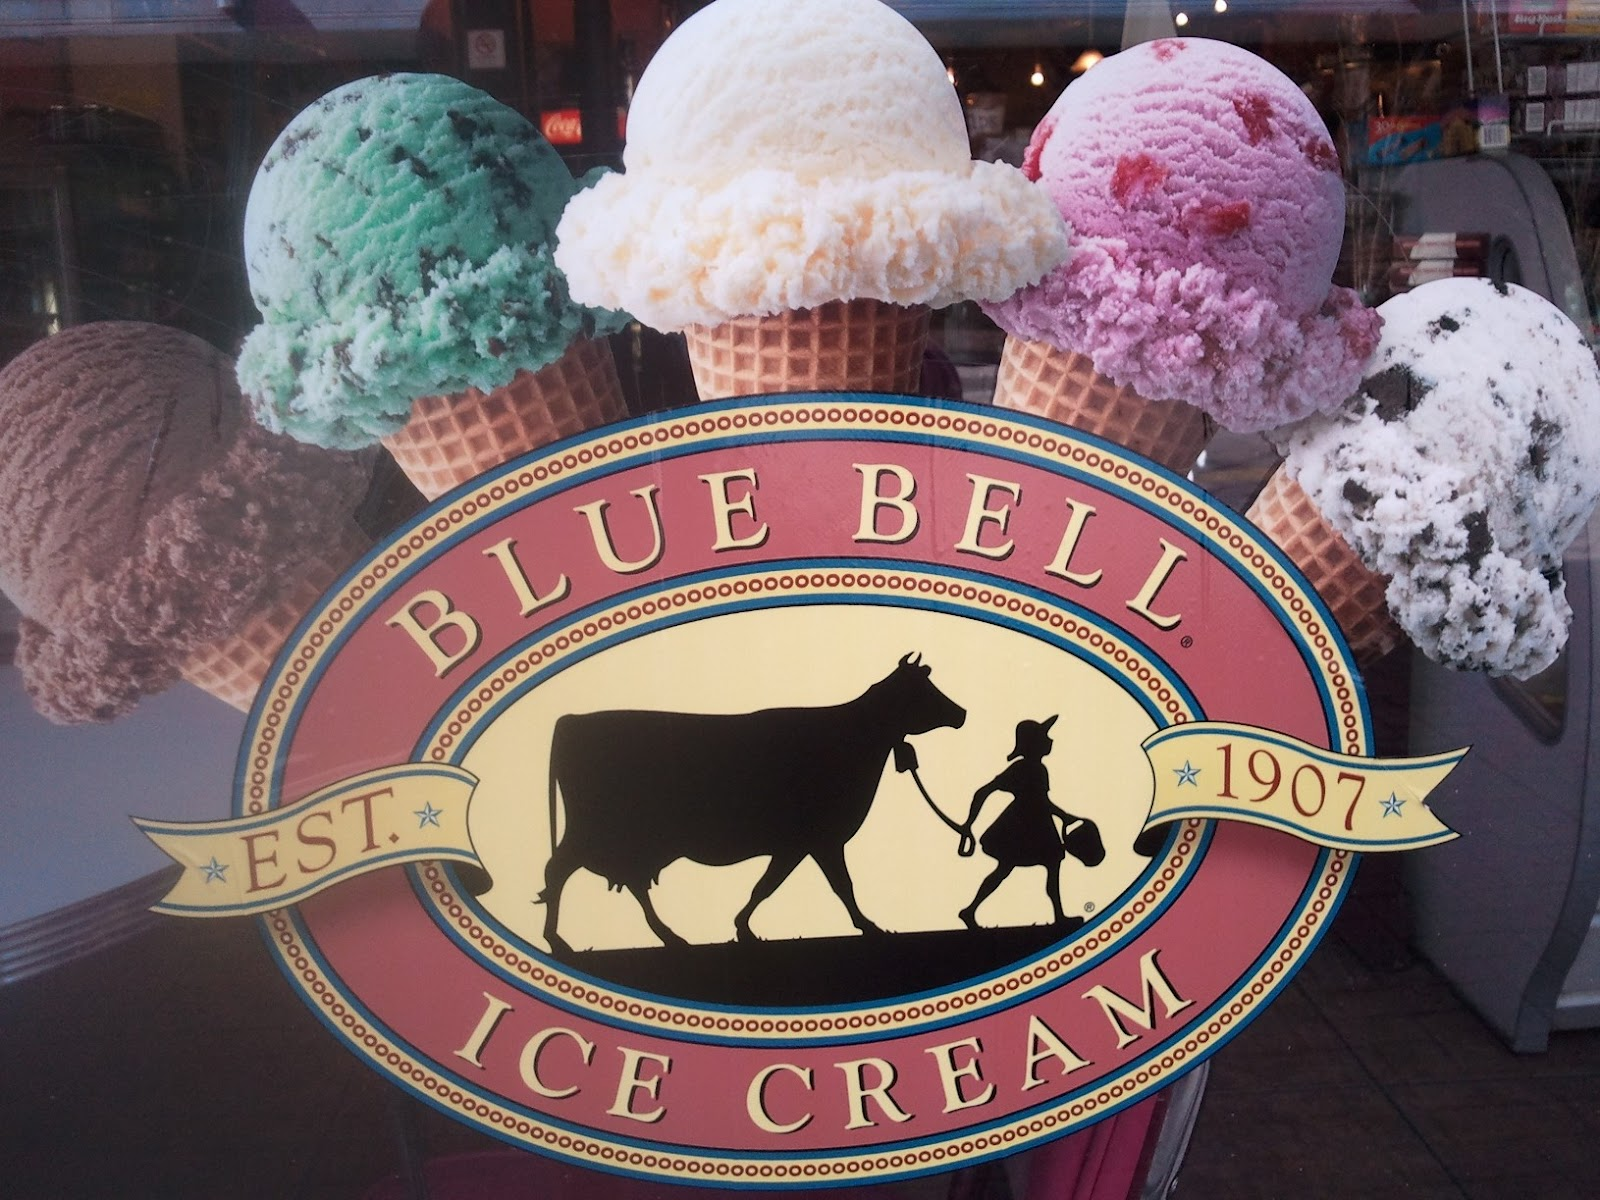 Blue Bells Birthday Cake Ice Cream